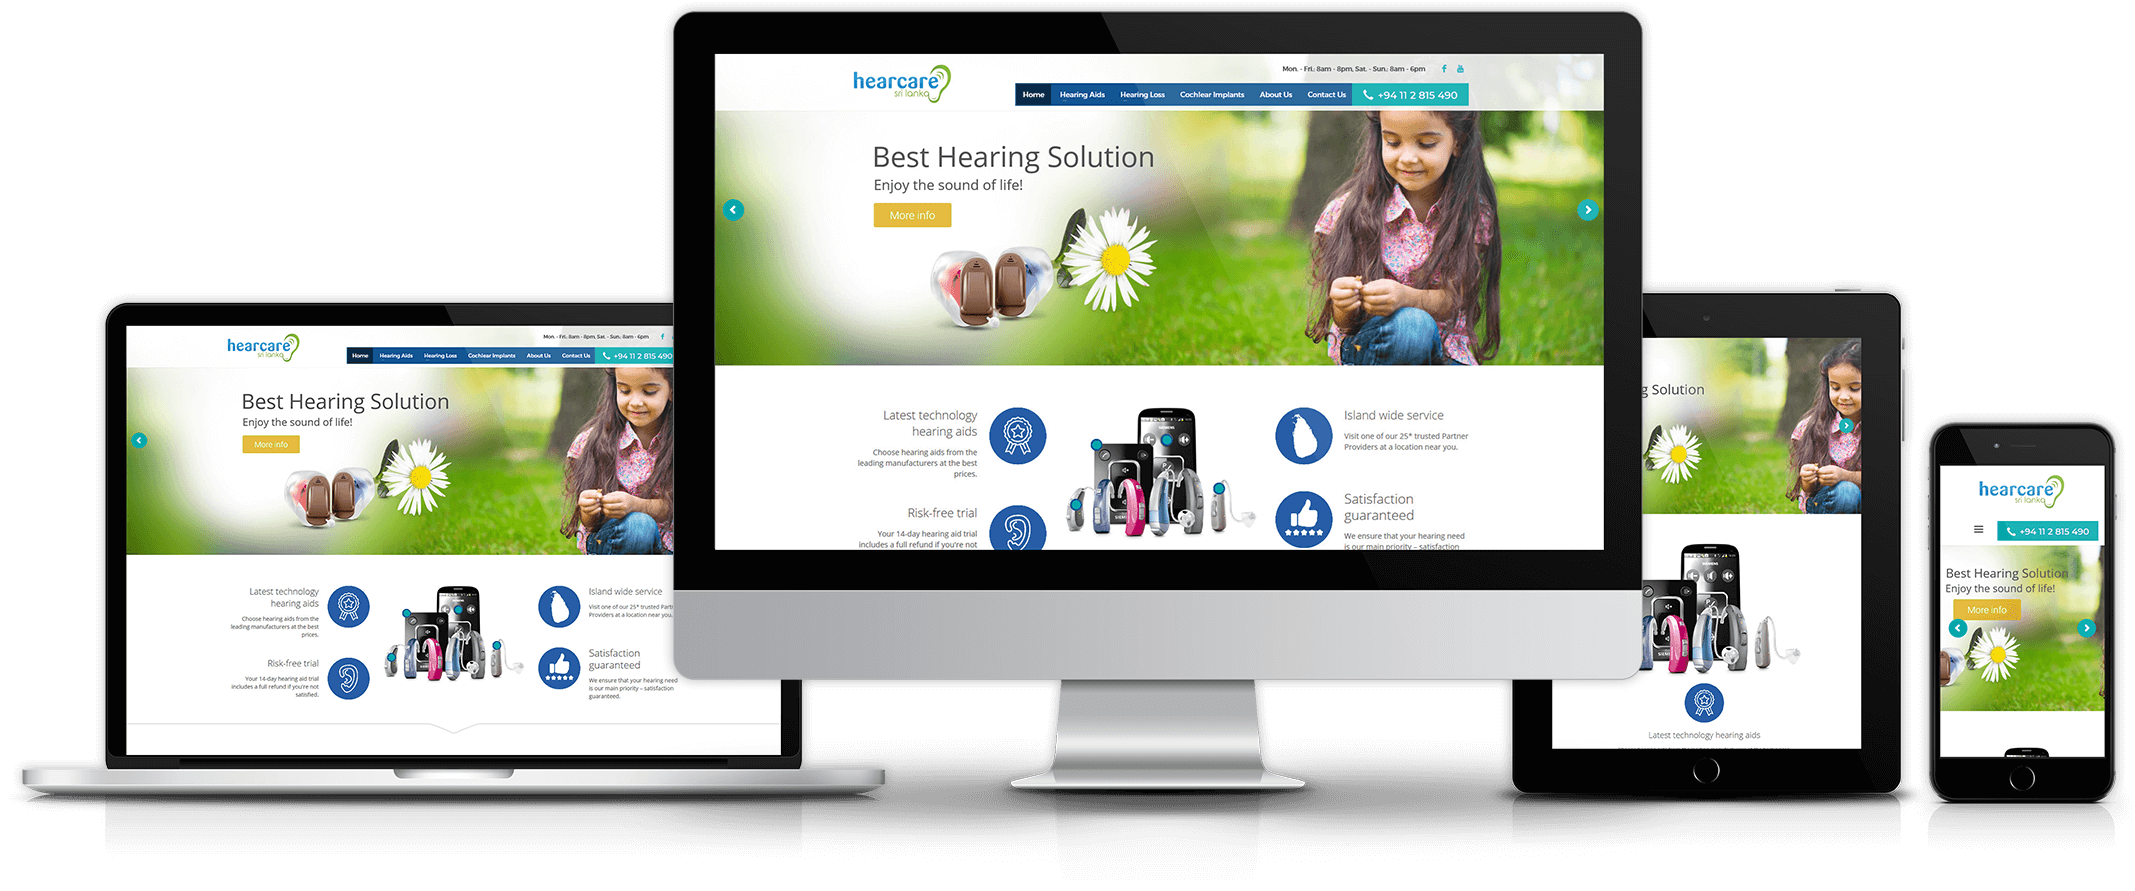 hearcare- website